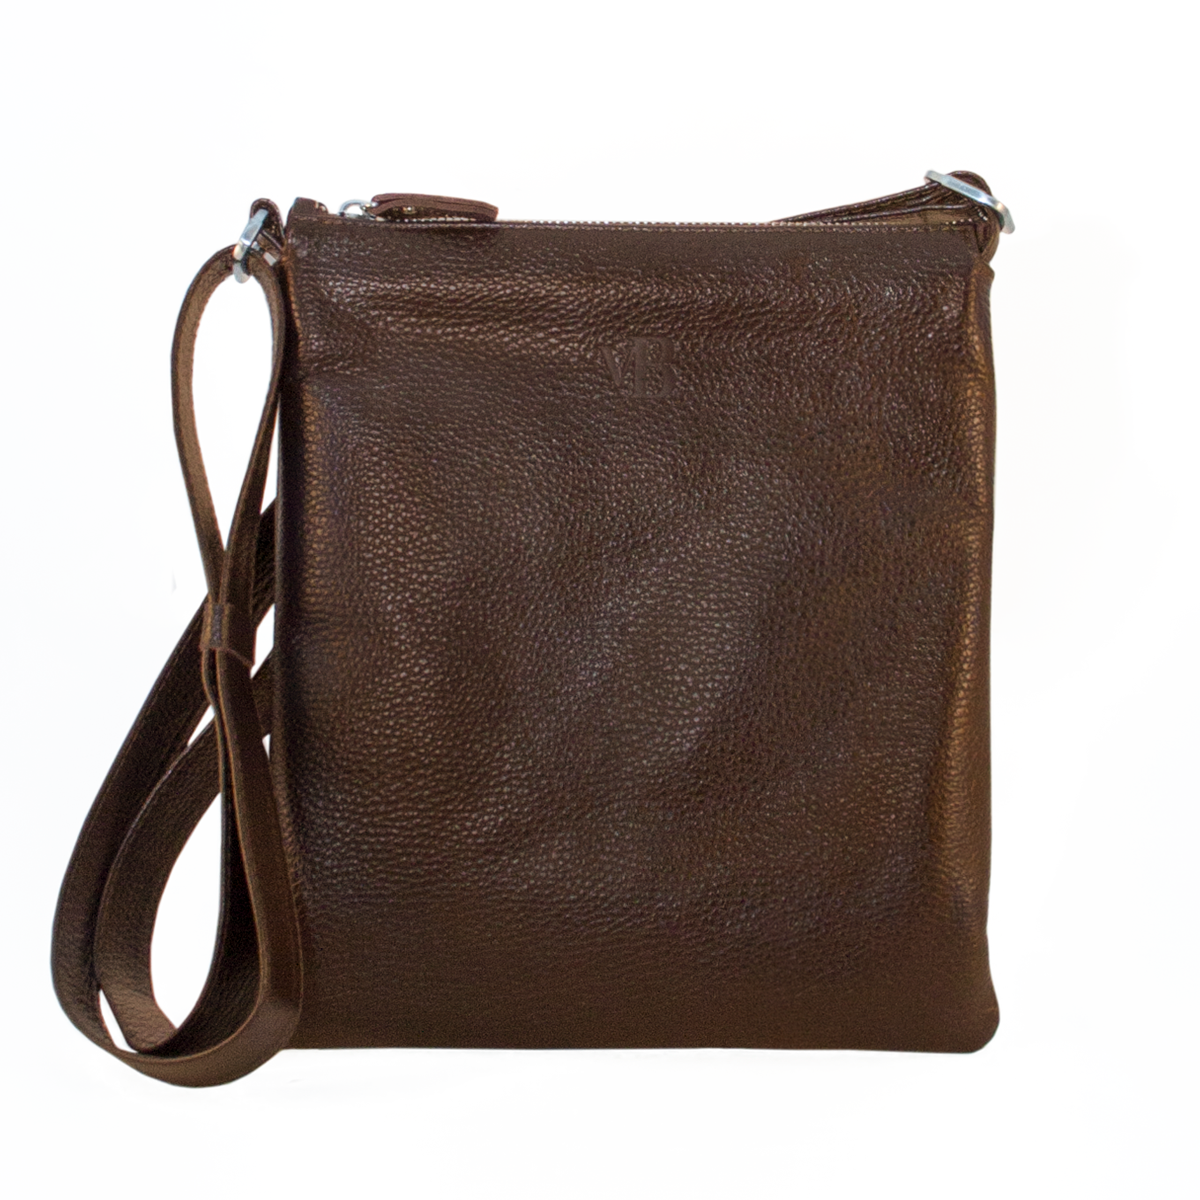 Small Handbag Dark Brown